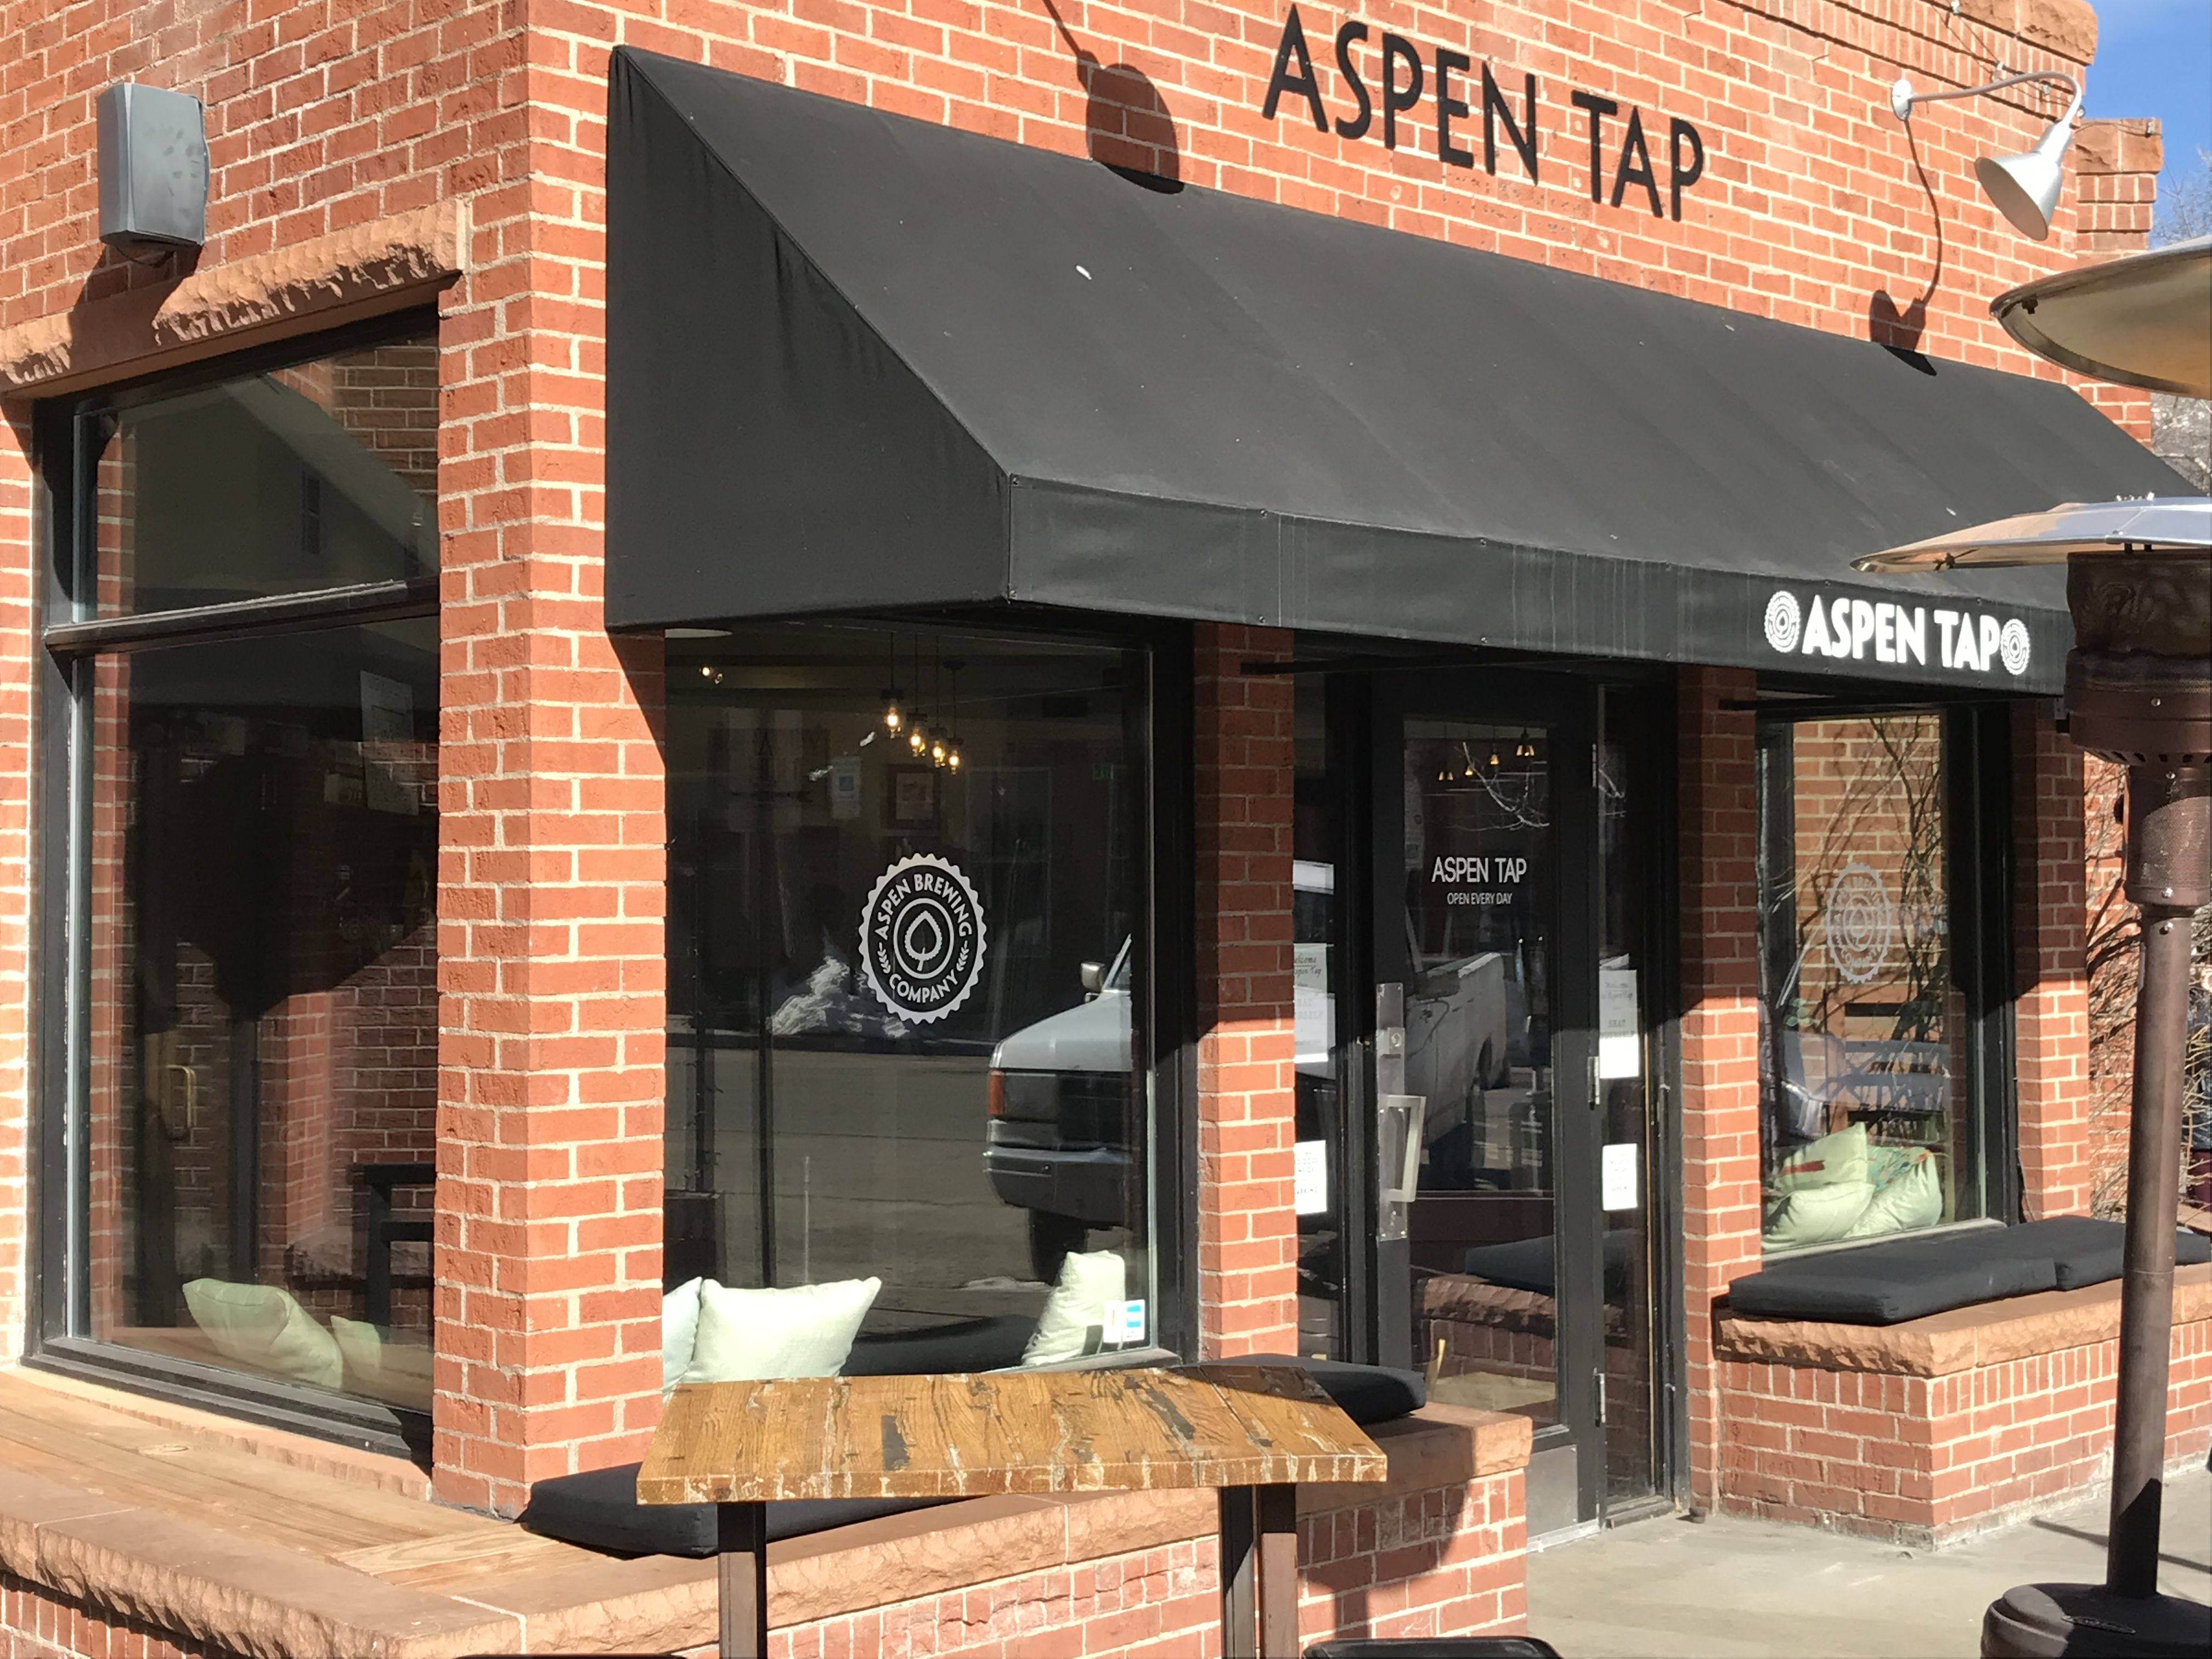 Aspen Tap This Is Aspen Brewing Company S Expanded Tasting Room And Restaurant It Is Located At 121 S Galena St With Great Aspen Aspen Snowmass Spring Cafe